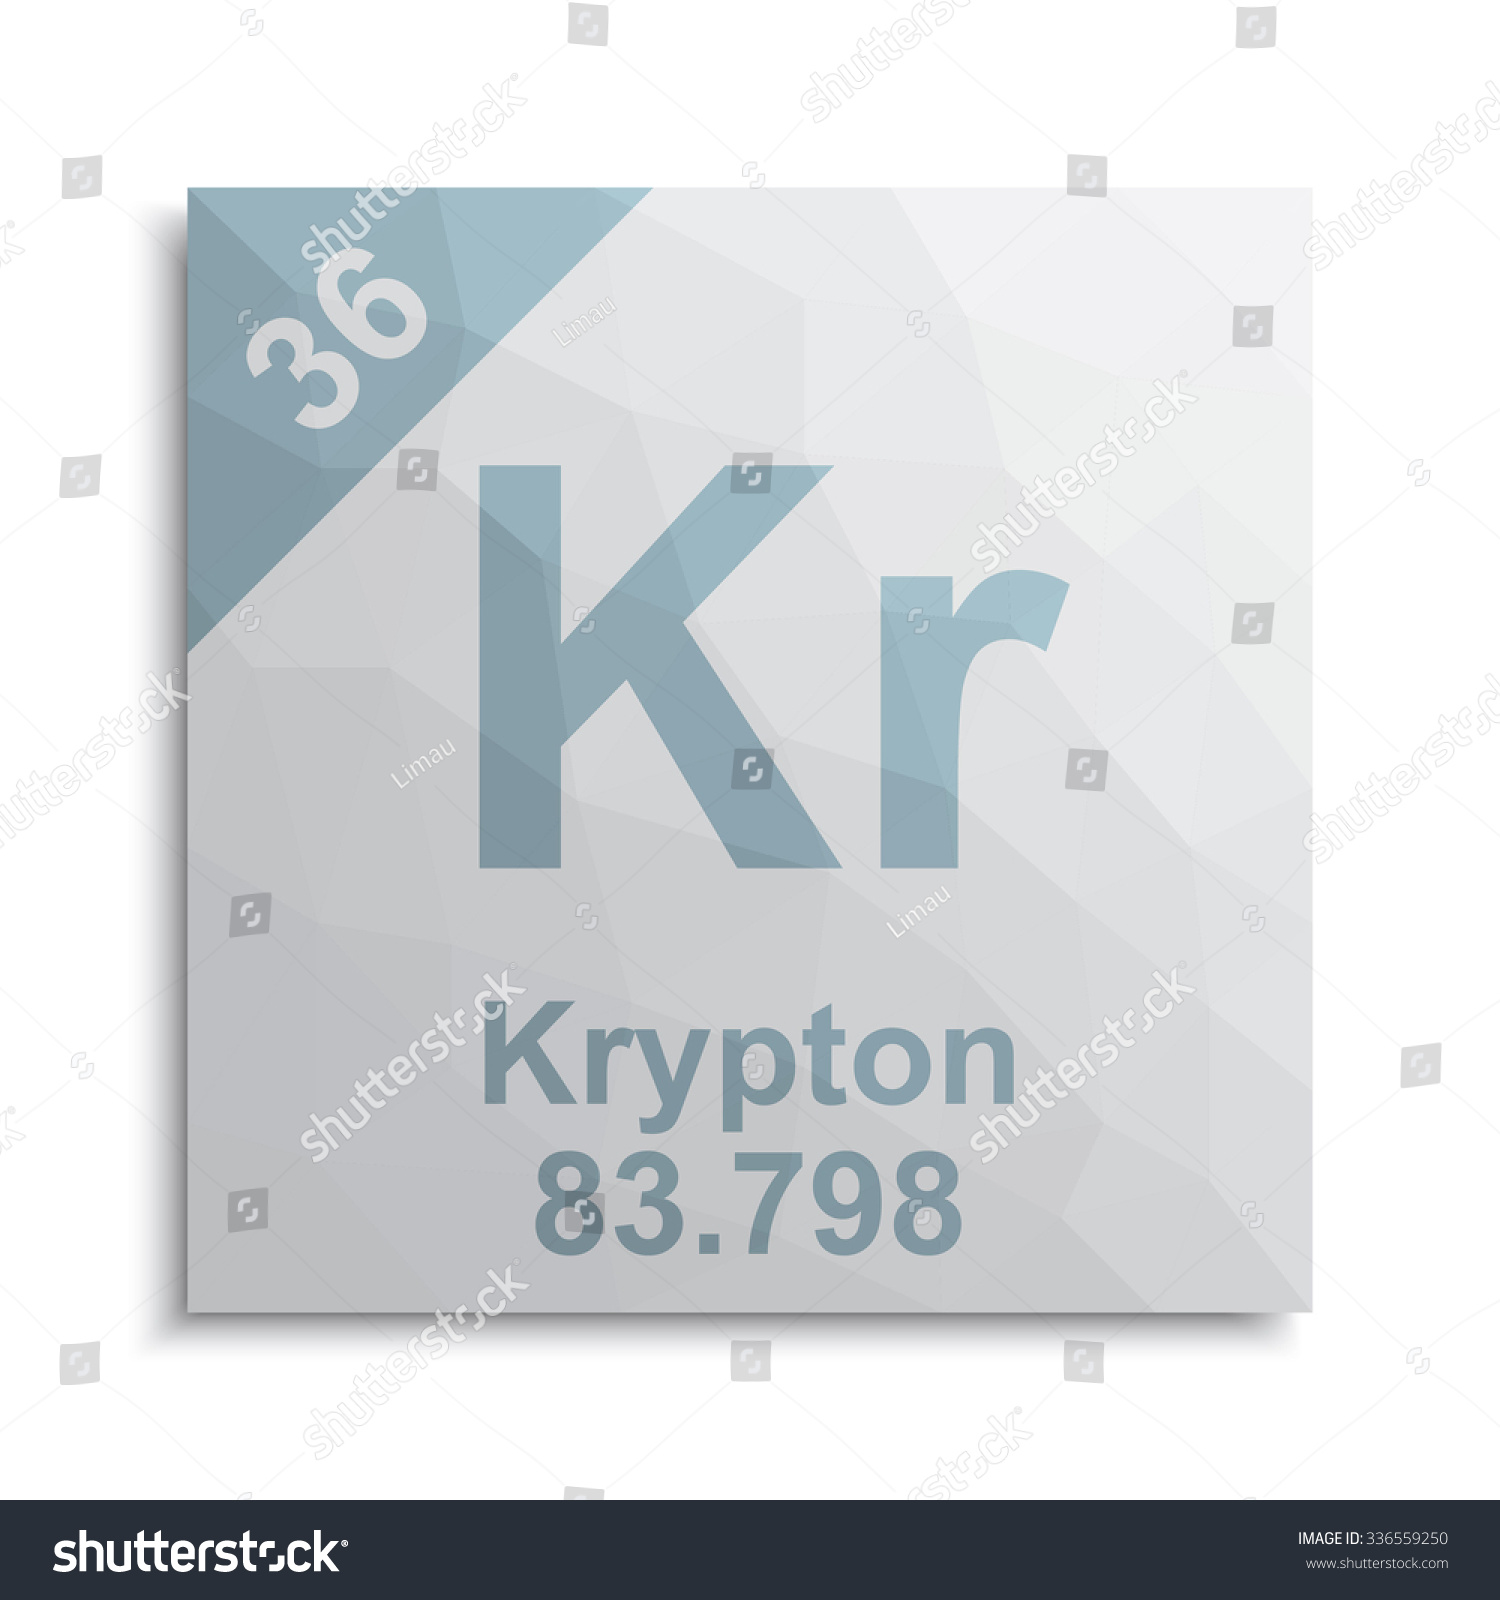 7th element periodic table gallery periodic table images 7th element periodic table gallery periodic table images 7th element periodic table image collections periodic table gamestrikefo Image collections